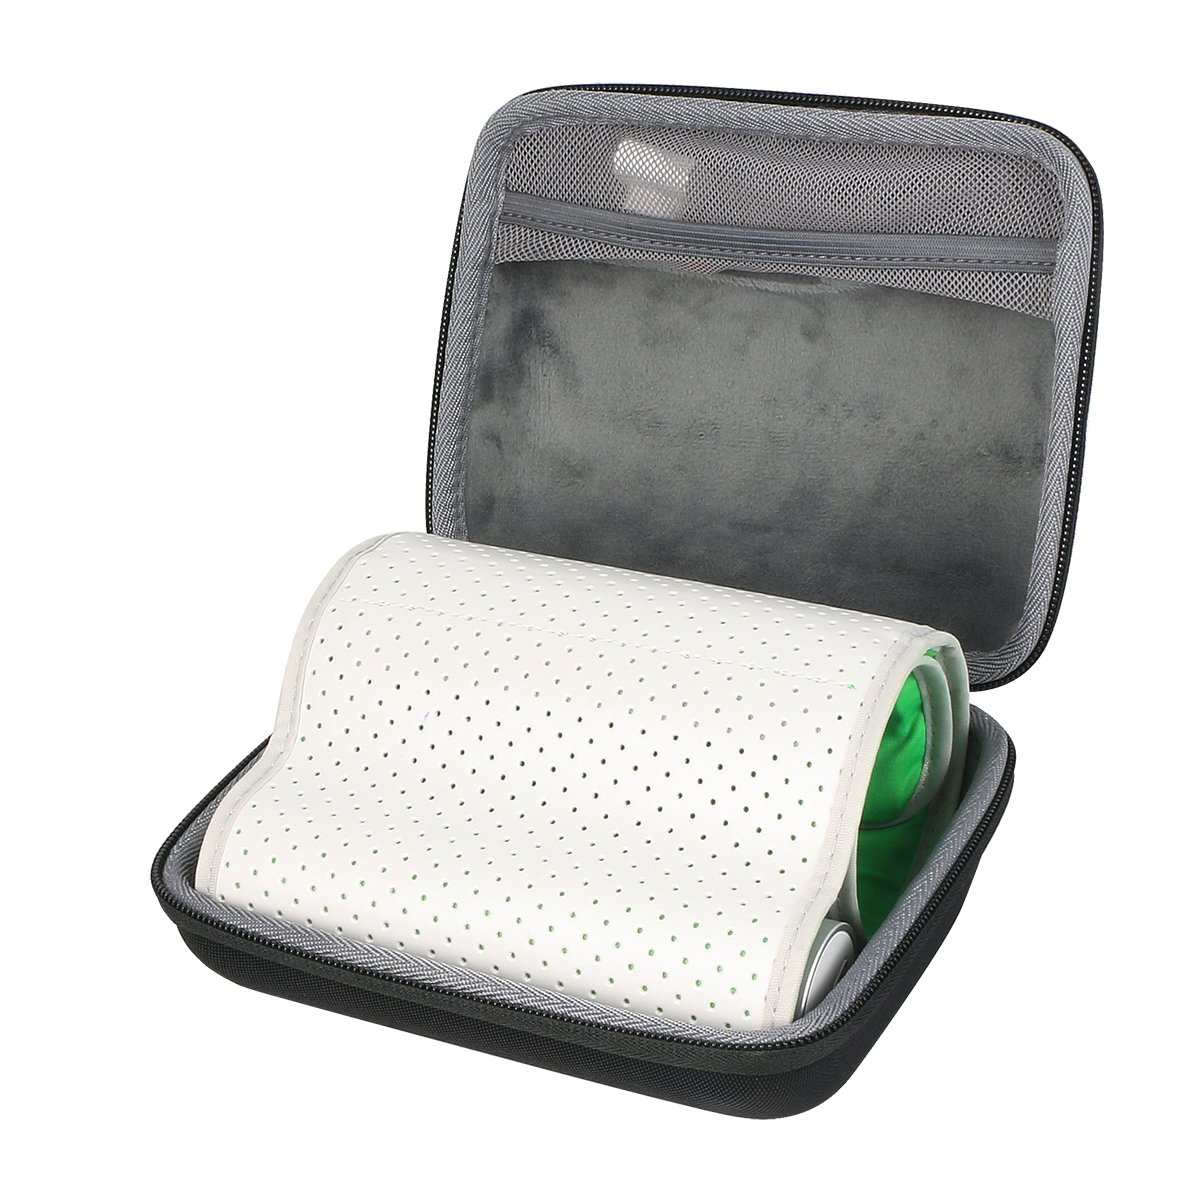 Hard Travel Case for Withings Wireless Blood Pressure Monitor by co2CREA